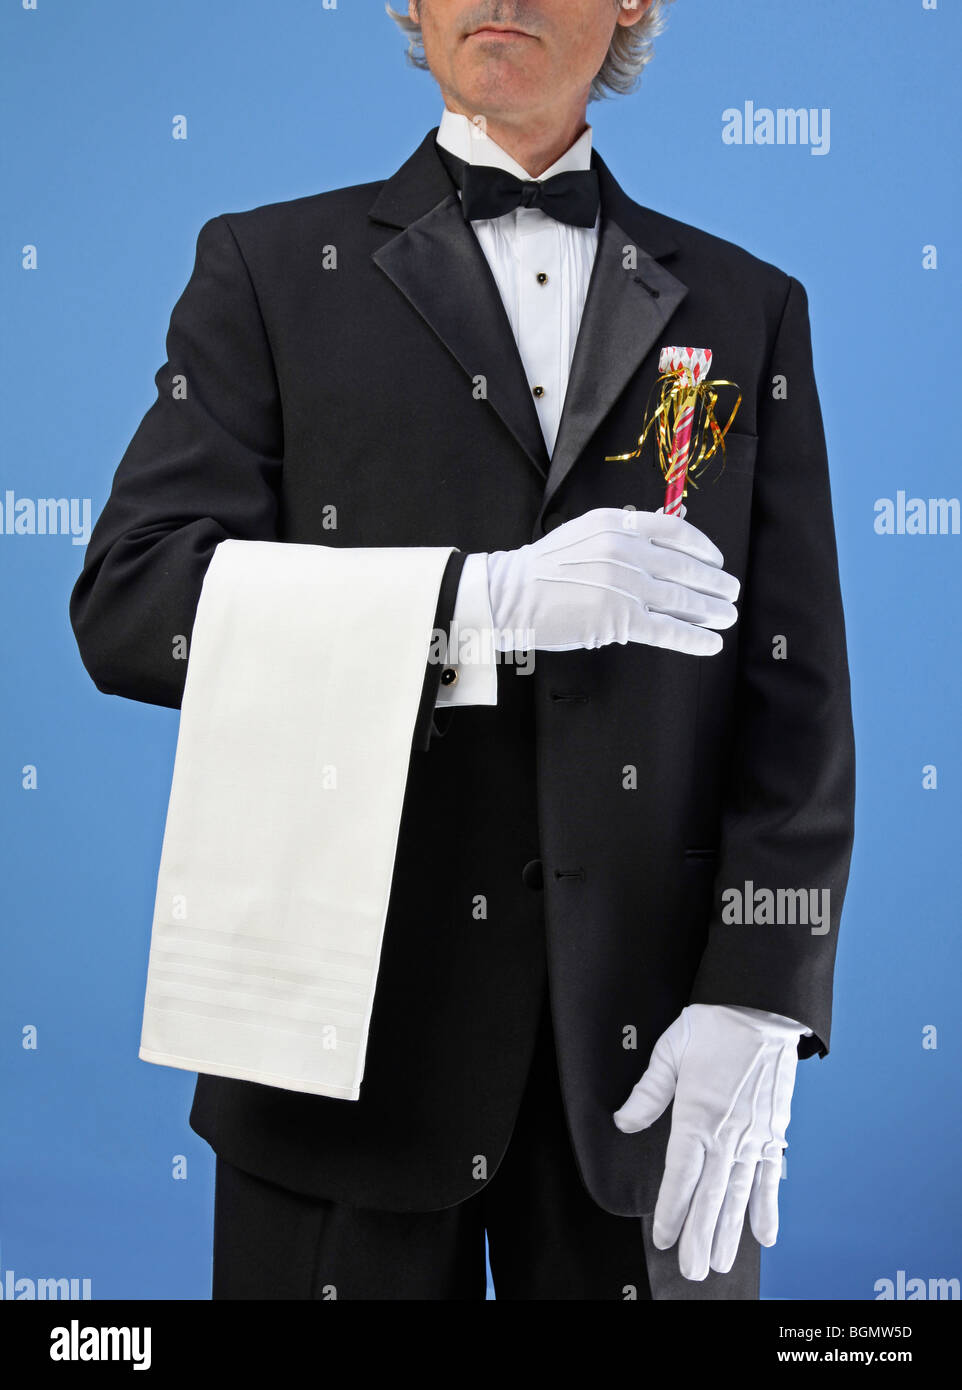 butler or waiter stands with party blower in hand - Stock Image